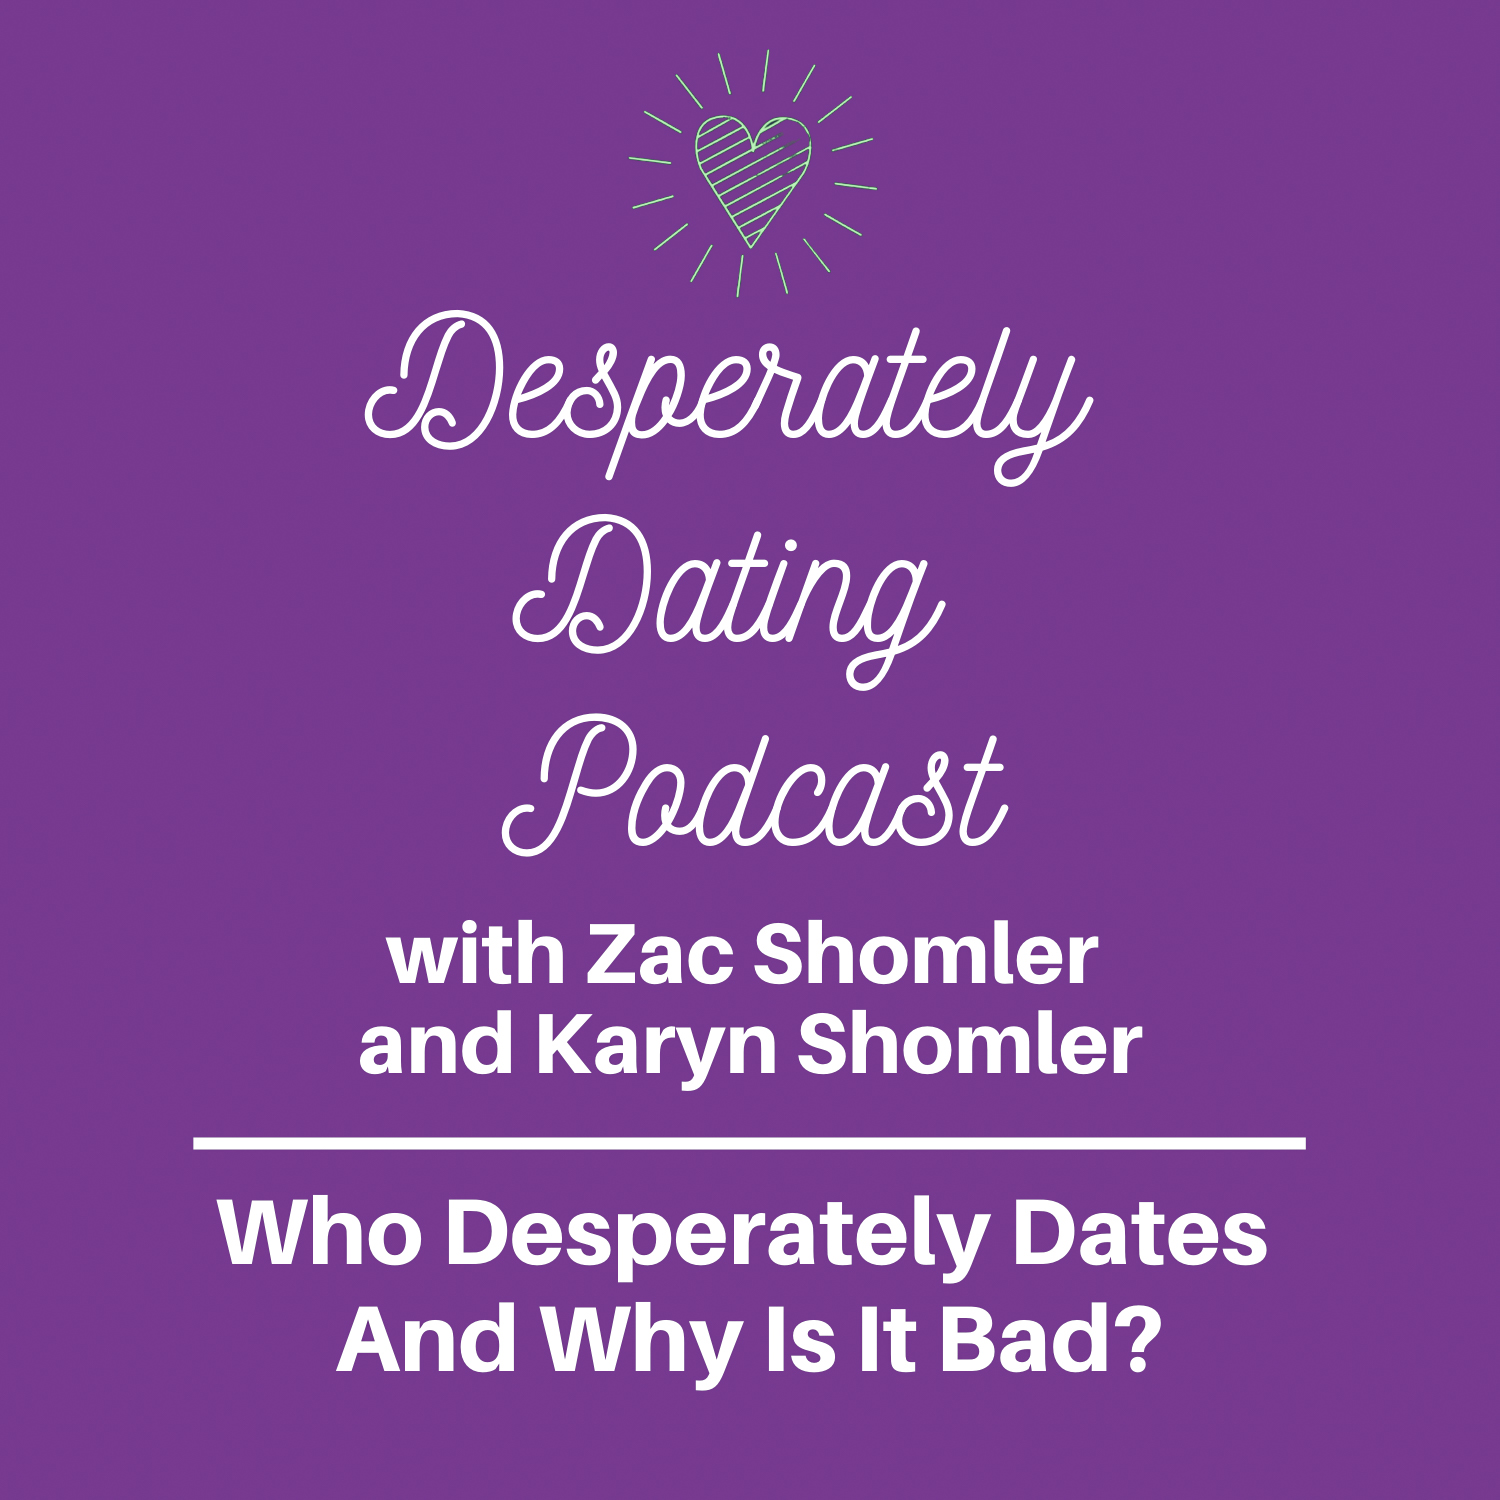 Who Desperately Dates & Why Is It Bad? -Desperately Dating Podcast Episode 2 Karyn Shomler and Zac Shomler